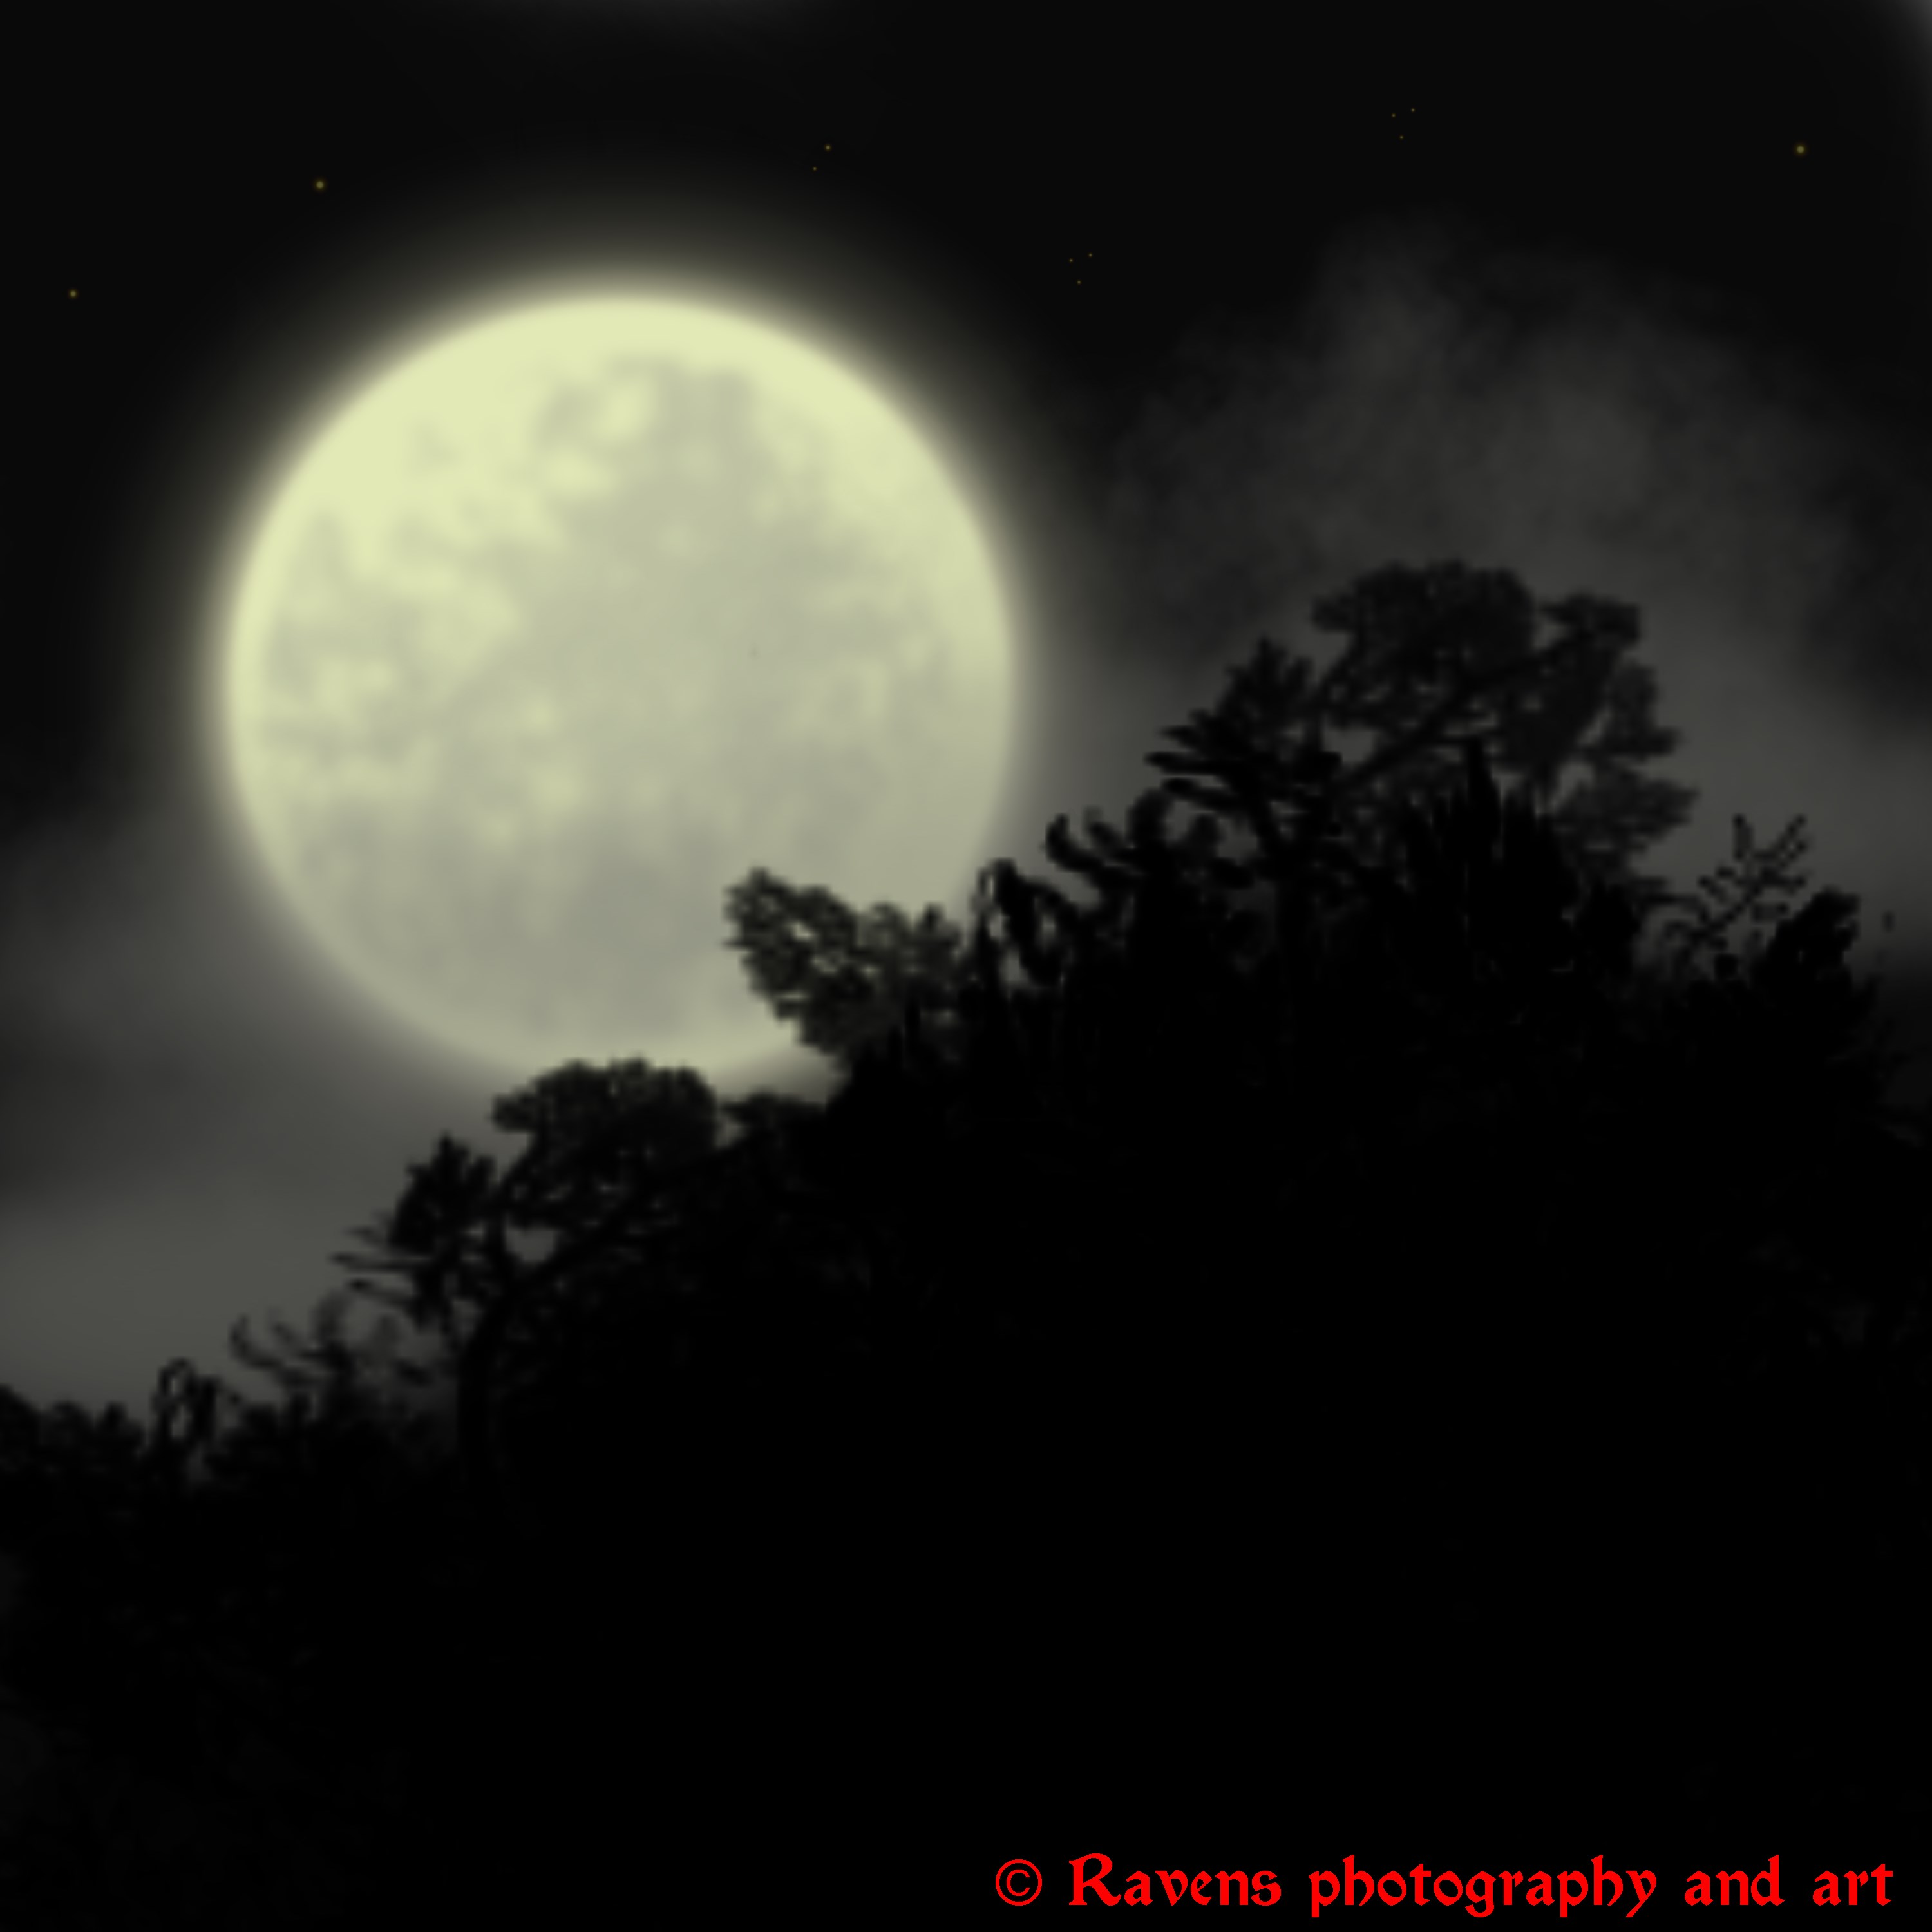 Full moon by GothicRavenMidnight